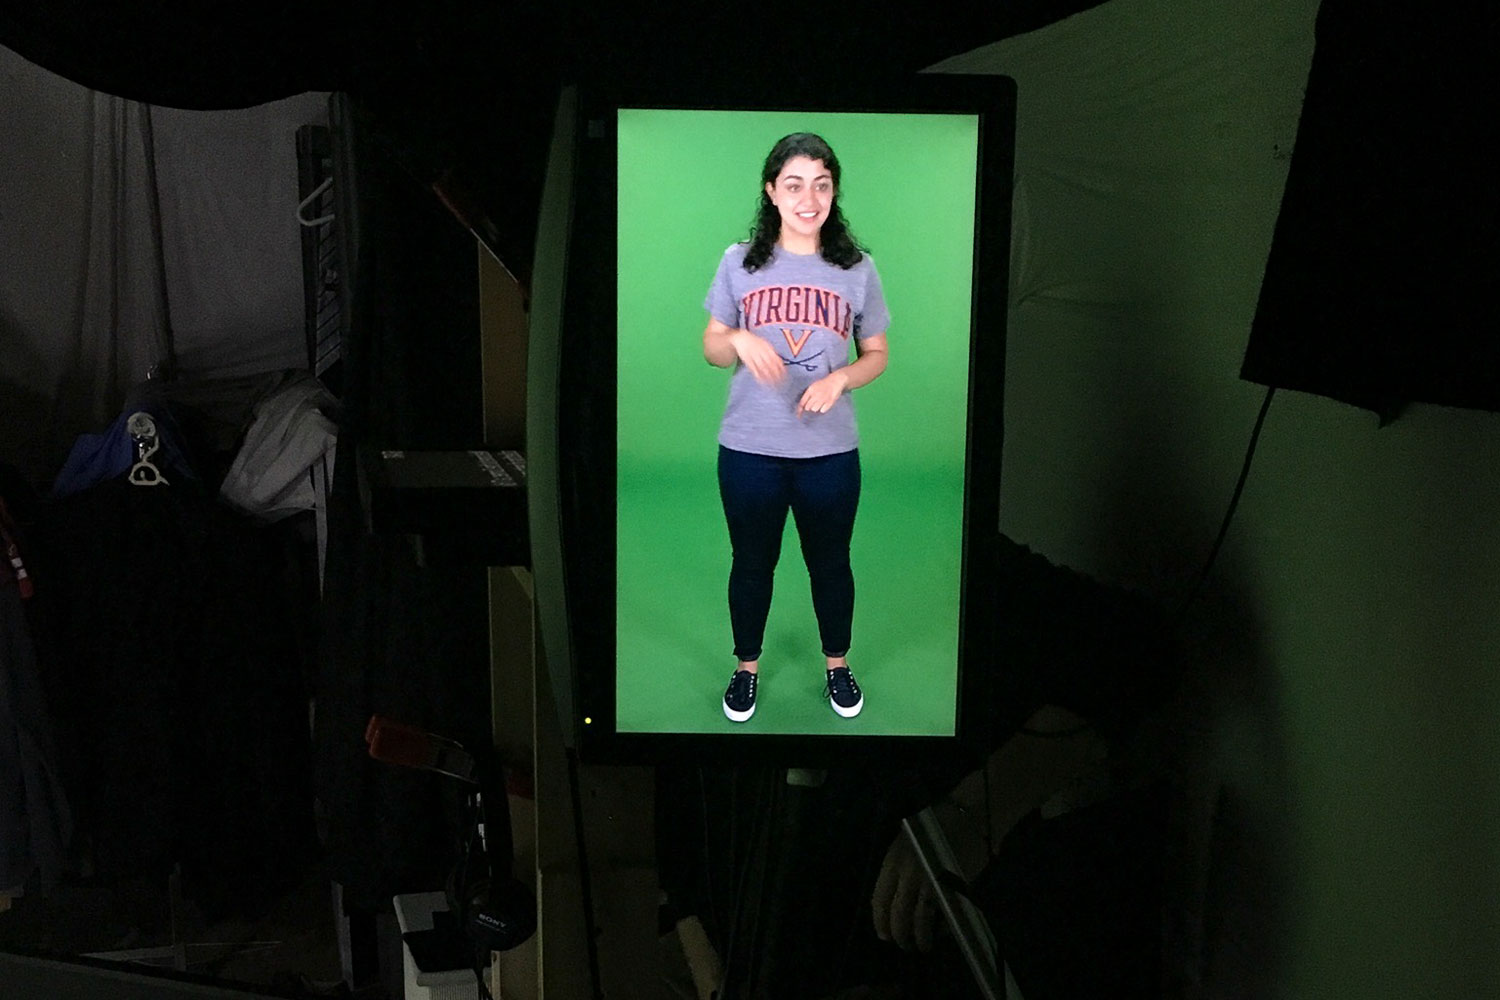 This Class of 2017 student, Kamilia Moalem, stood in front of a green screen to deliver her remarks for the virtual tour.